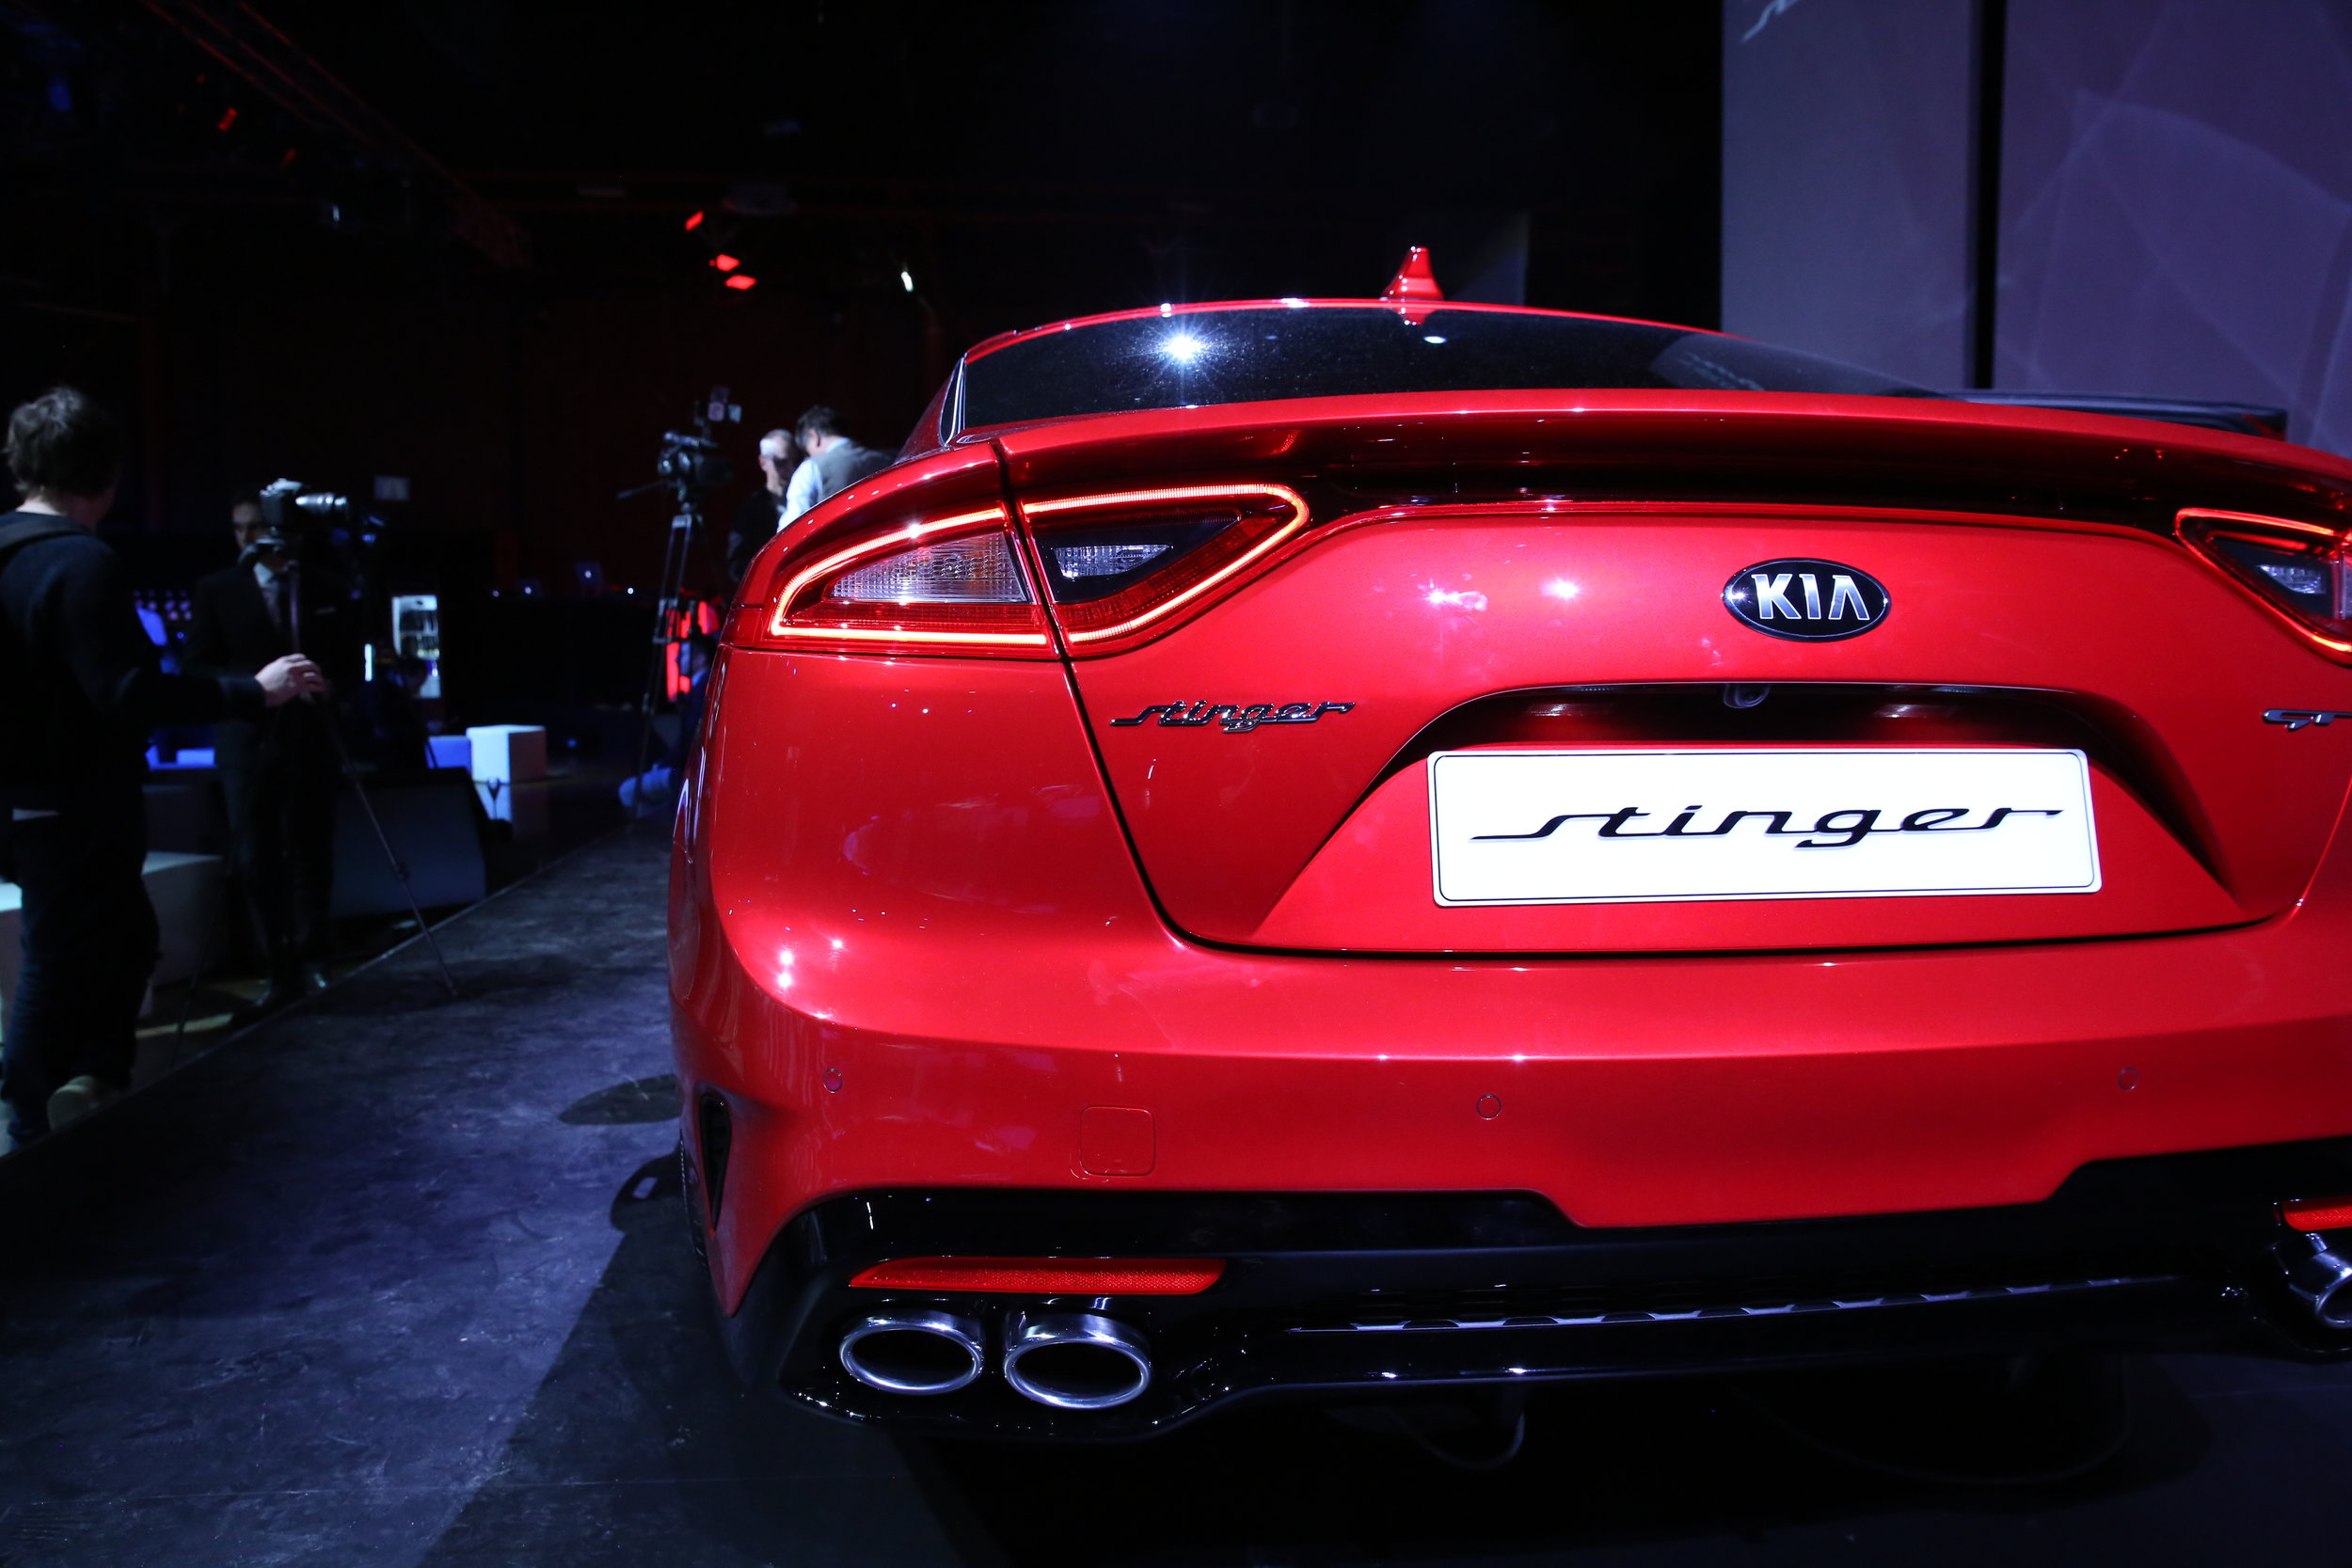 Lucie Loves Kia Stinger Milan-4898.JPG